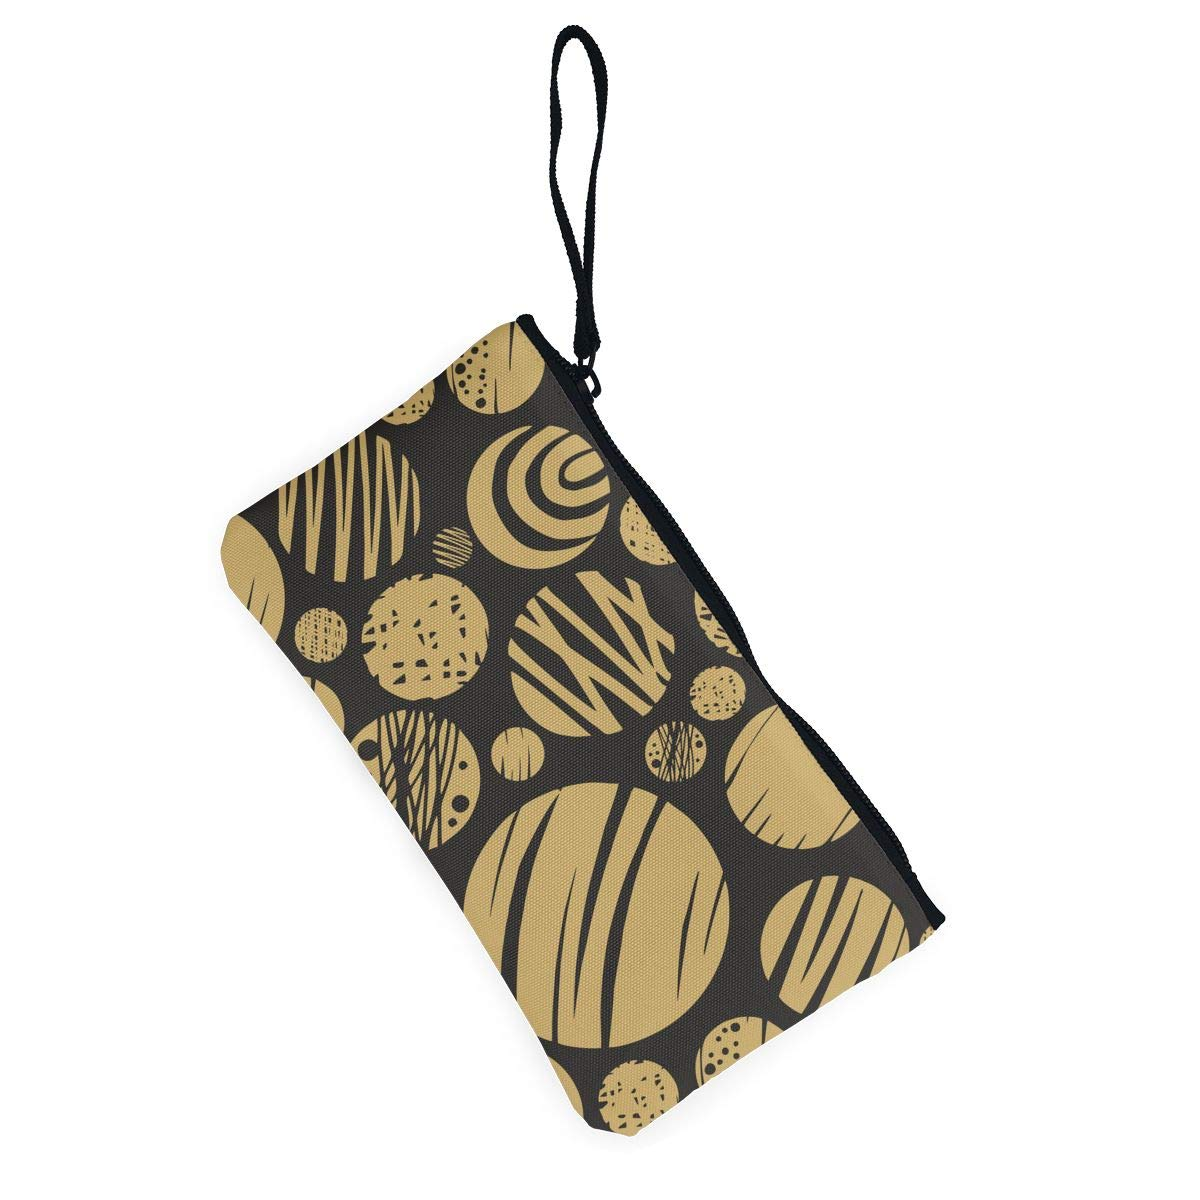 Chocolate Biscuits Women Mini Canvas Coin Purse Fashion Card Holder Wallet